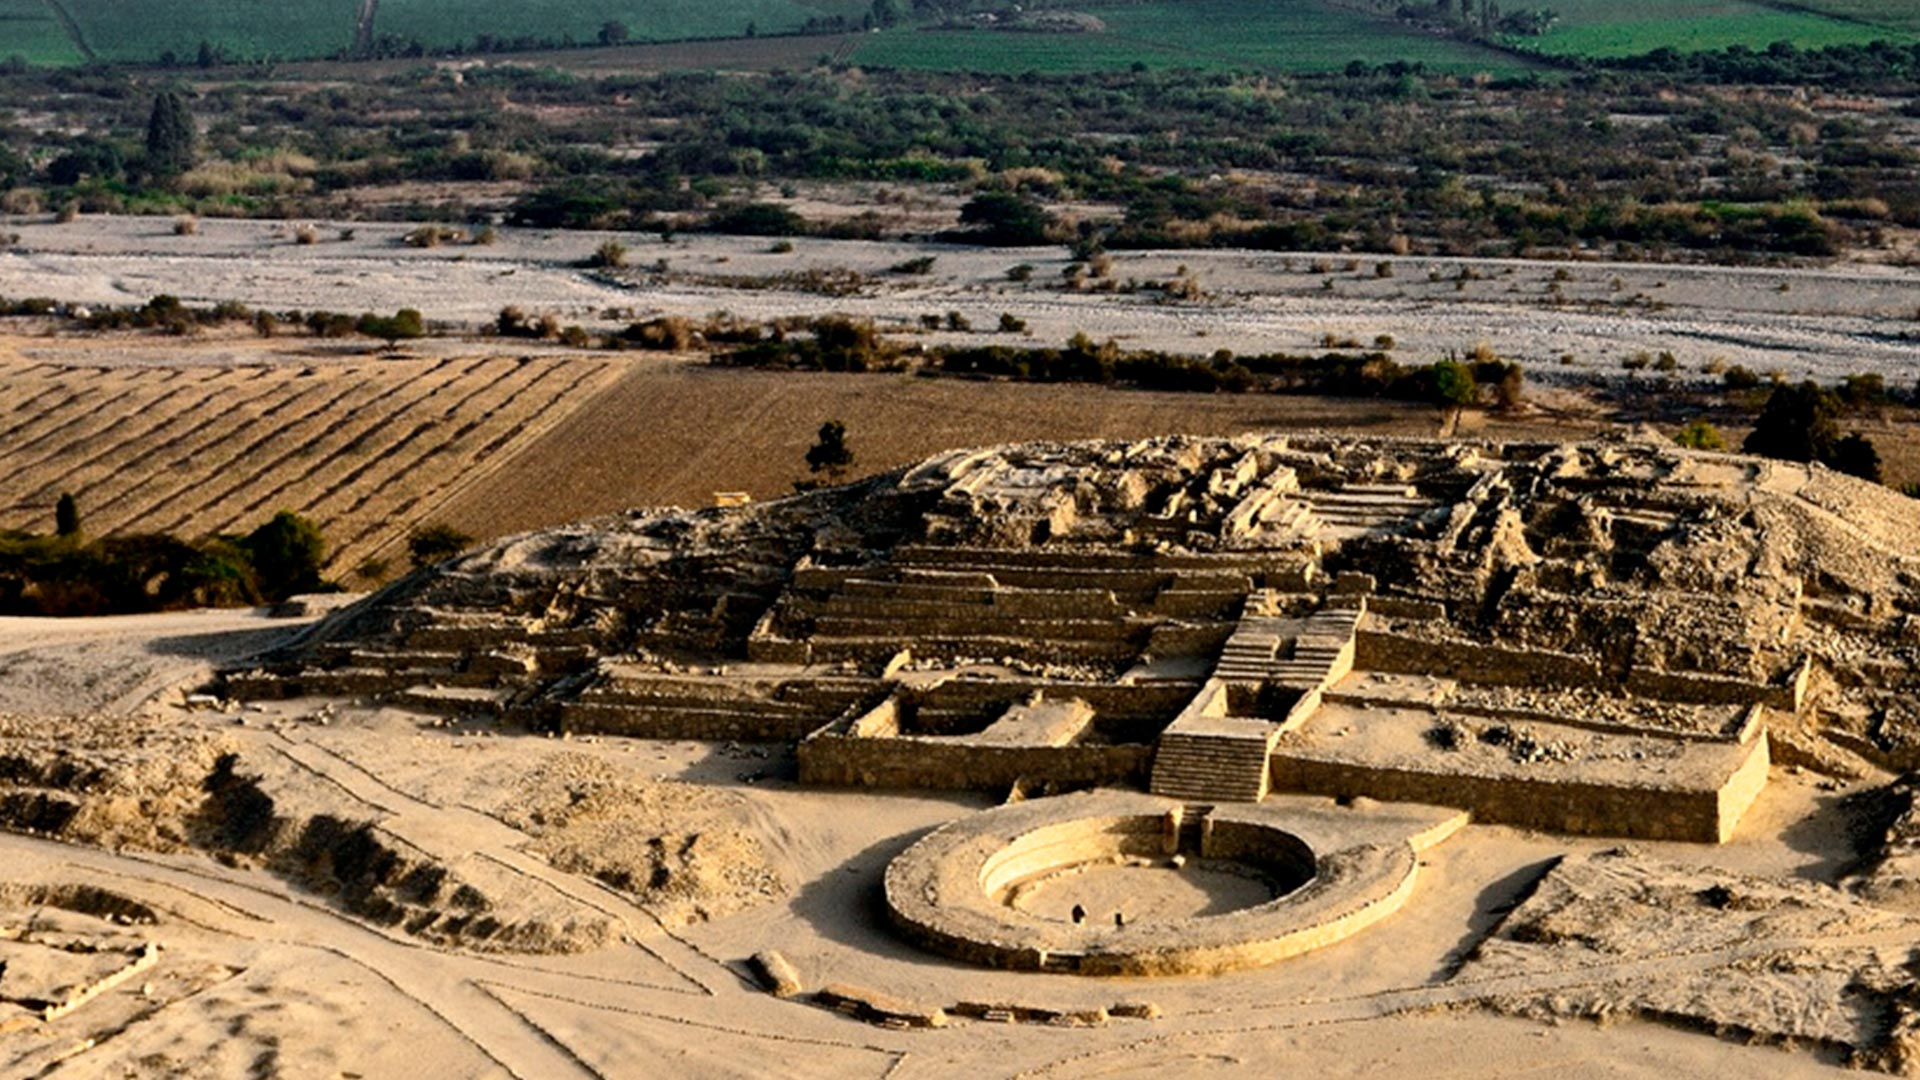 The Citadel of Caral, one of the best things to do in Peru.